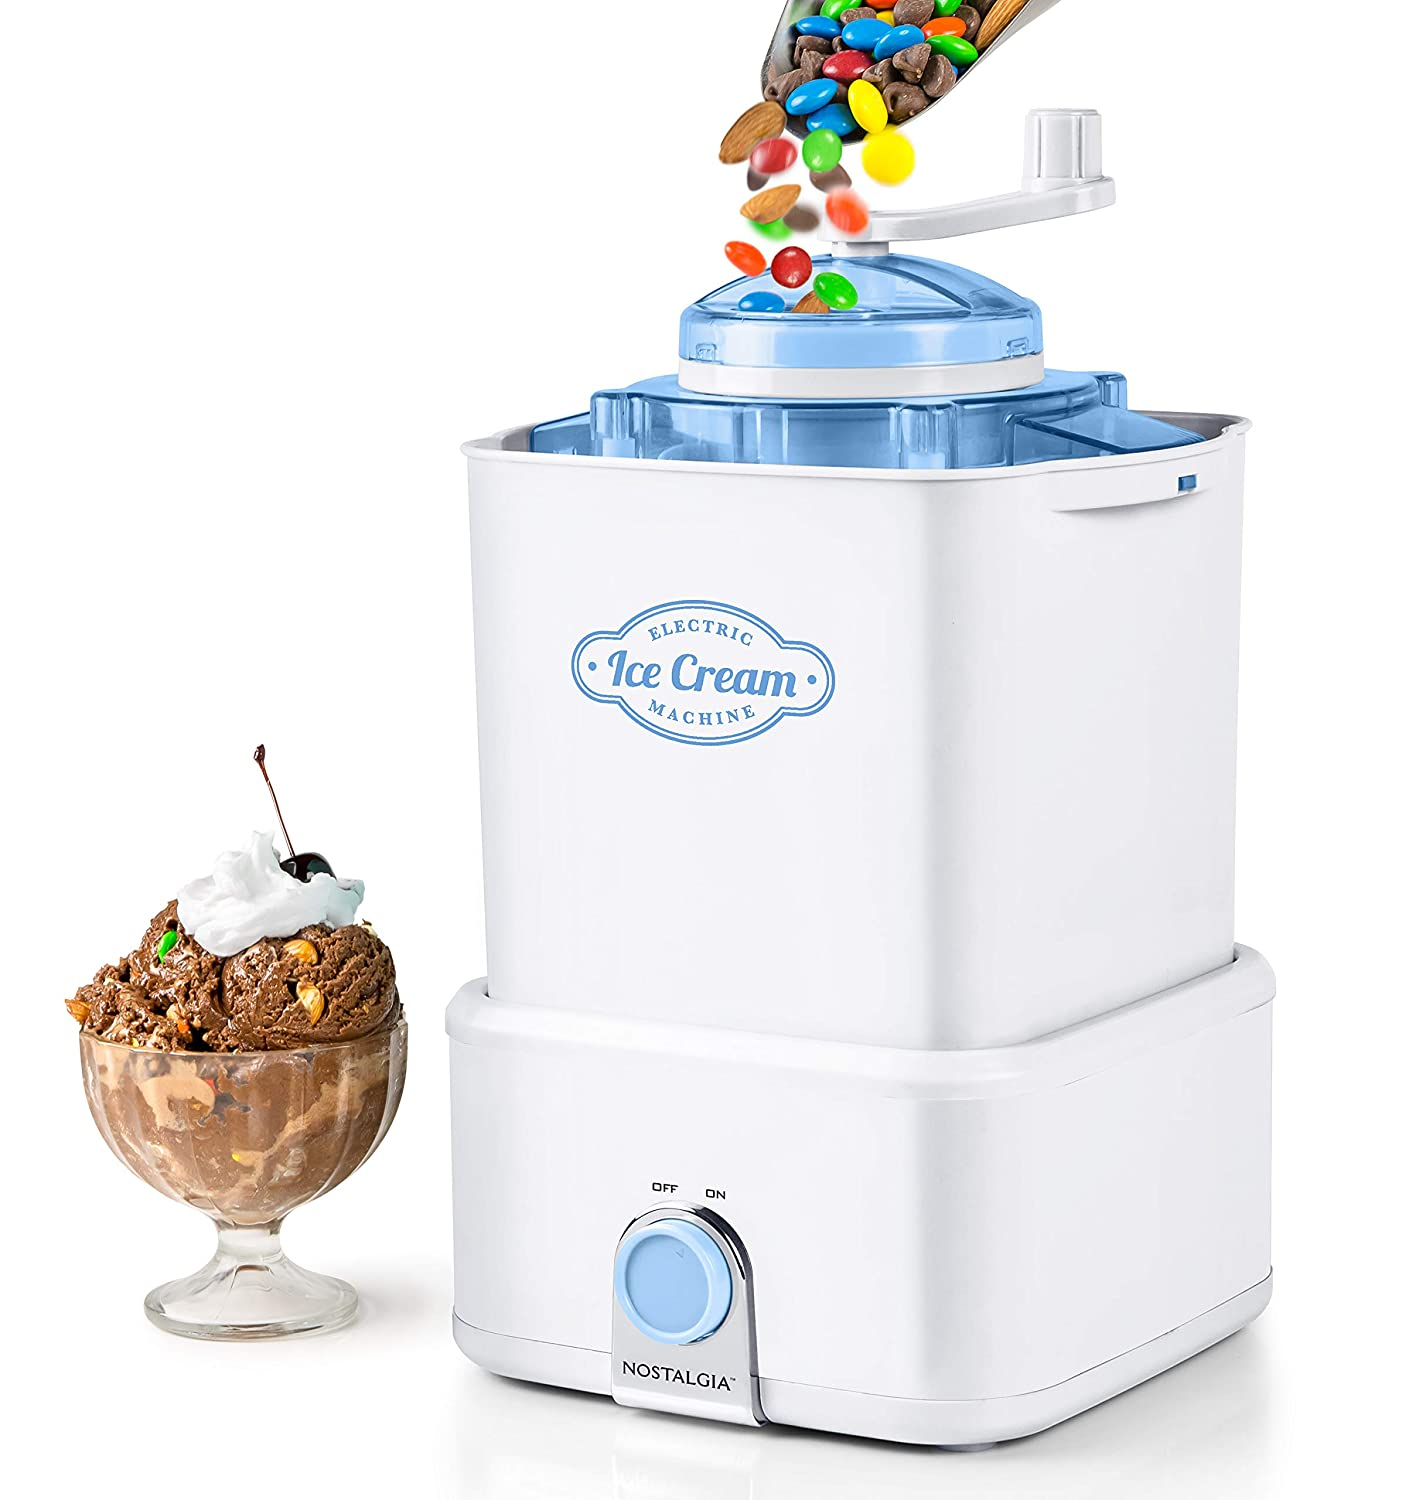 Nostalgia CICM2WB Electric Ice Cream Maker with Candy Crusher, 2-Quart White/Blue